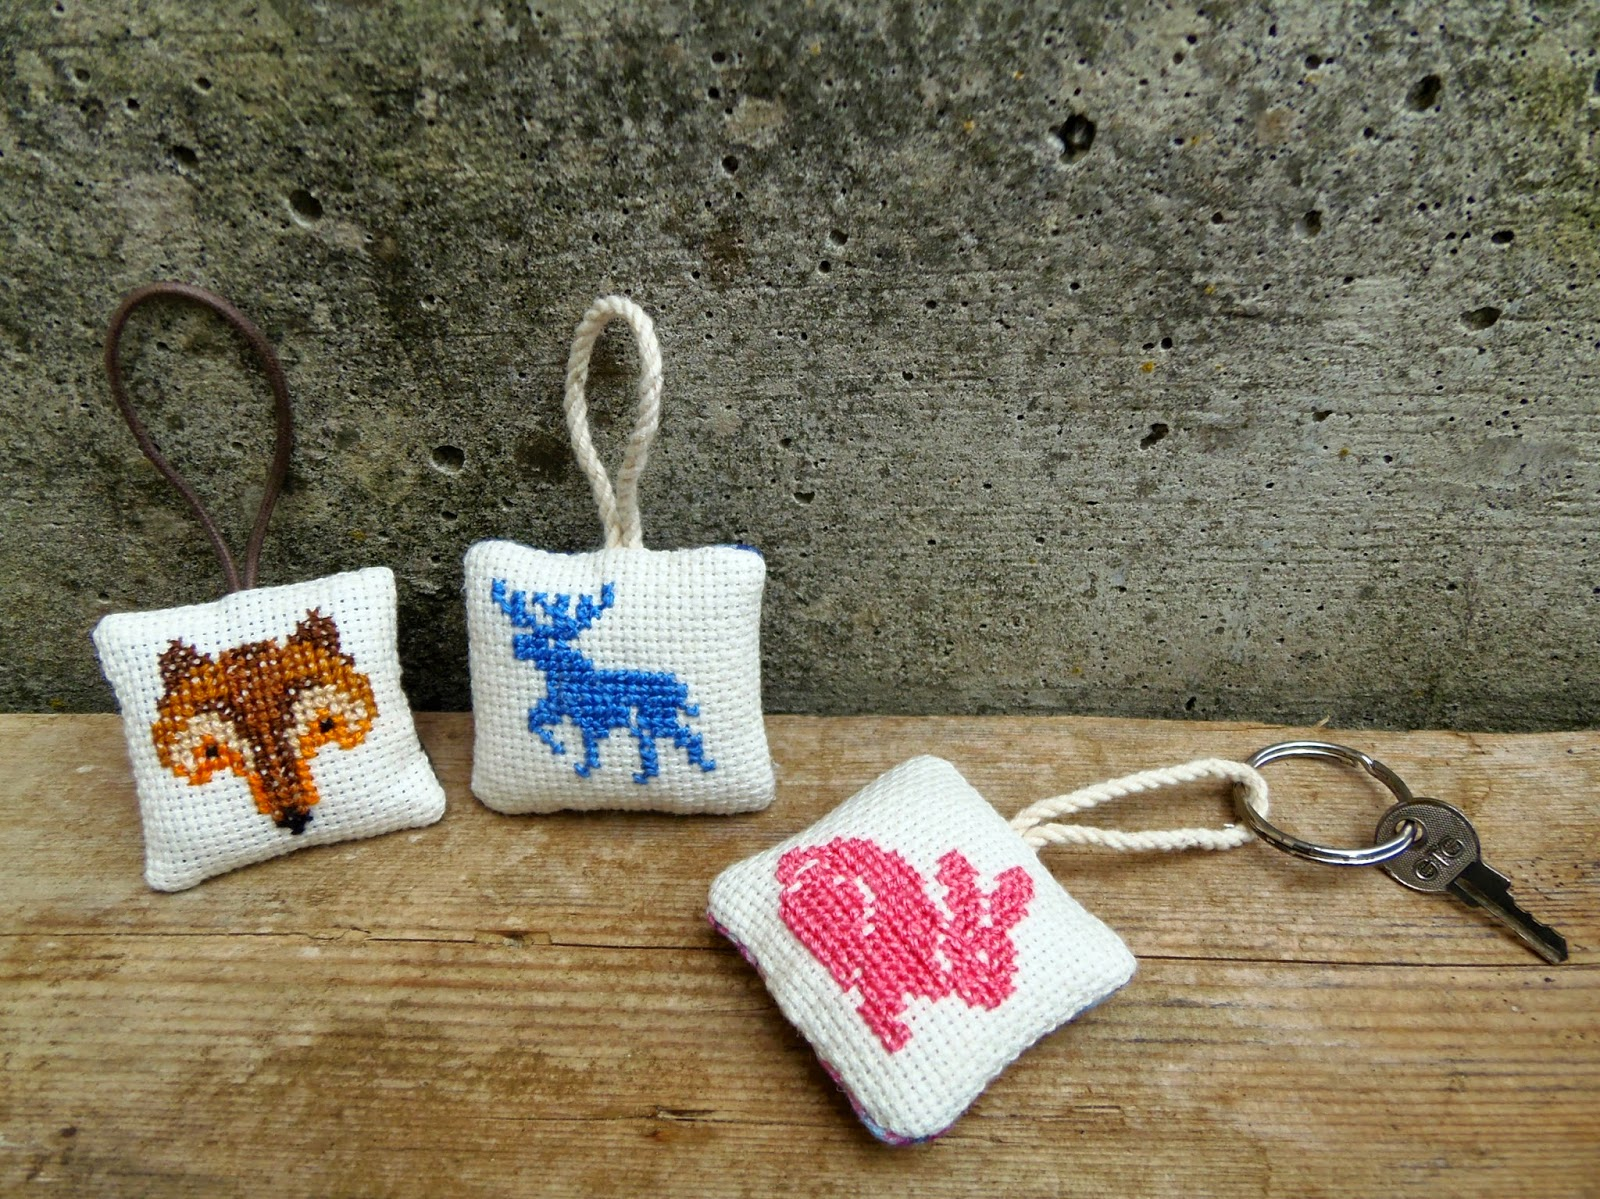 embroidered keychains with animals